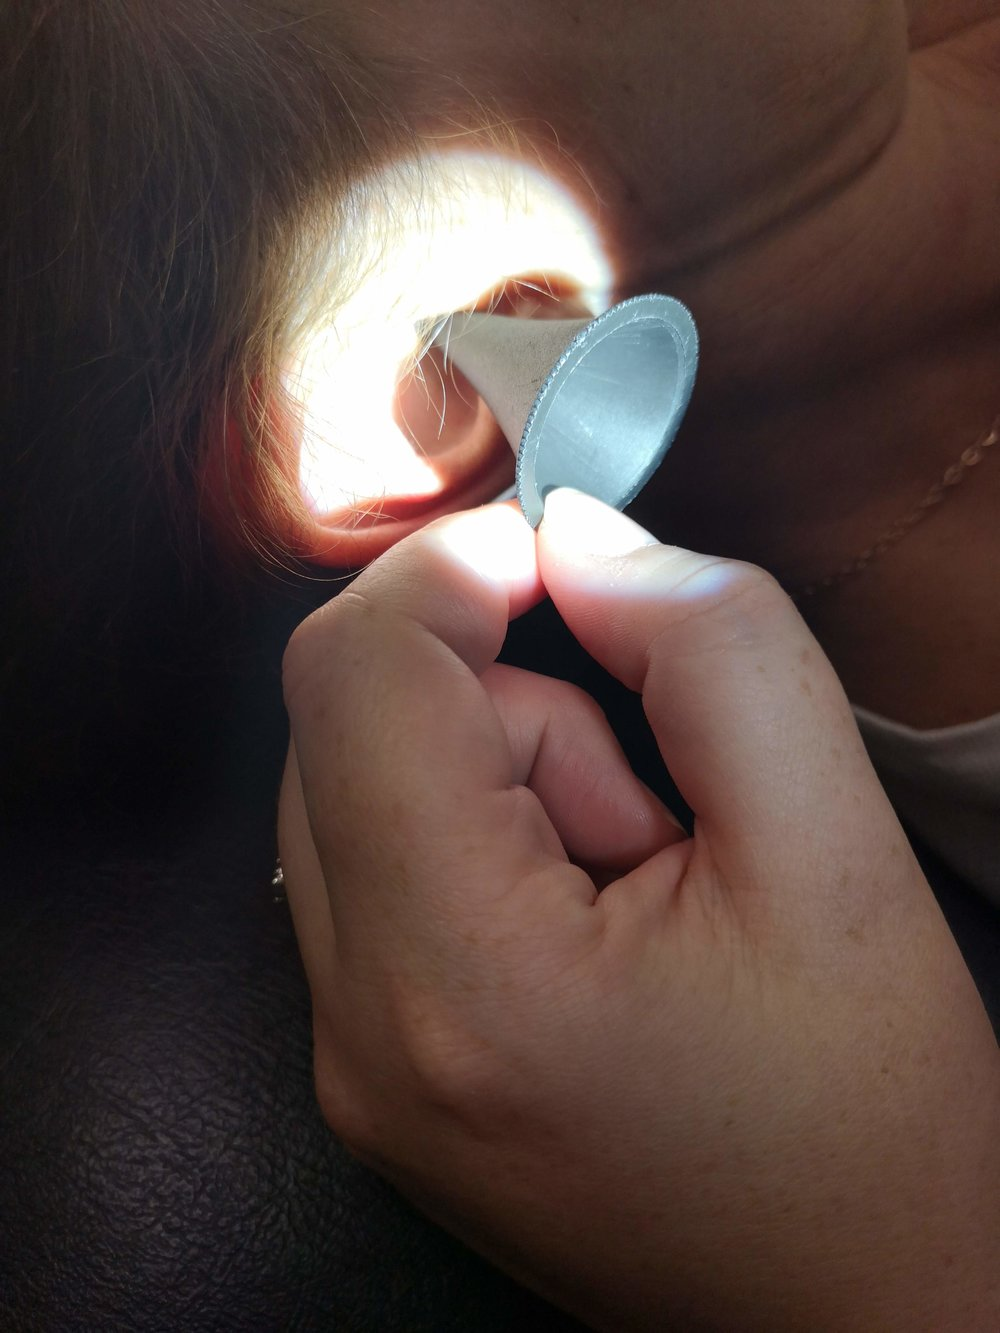 Wax removal - Ear wax is produced when your ear canal is cleaning itself. The wax protects, lubricates and waterproofs your ear. At times wax may cause a build-up that needs to be removed.